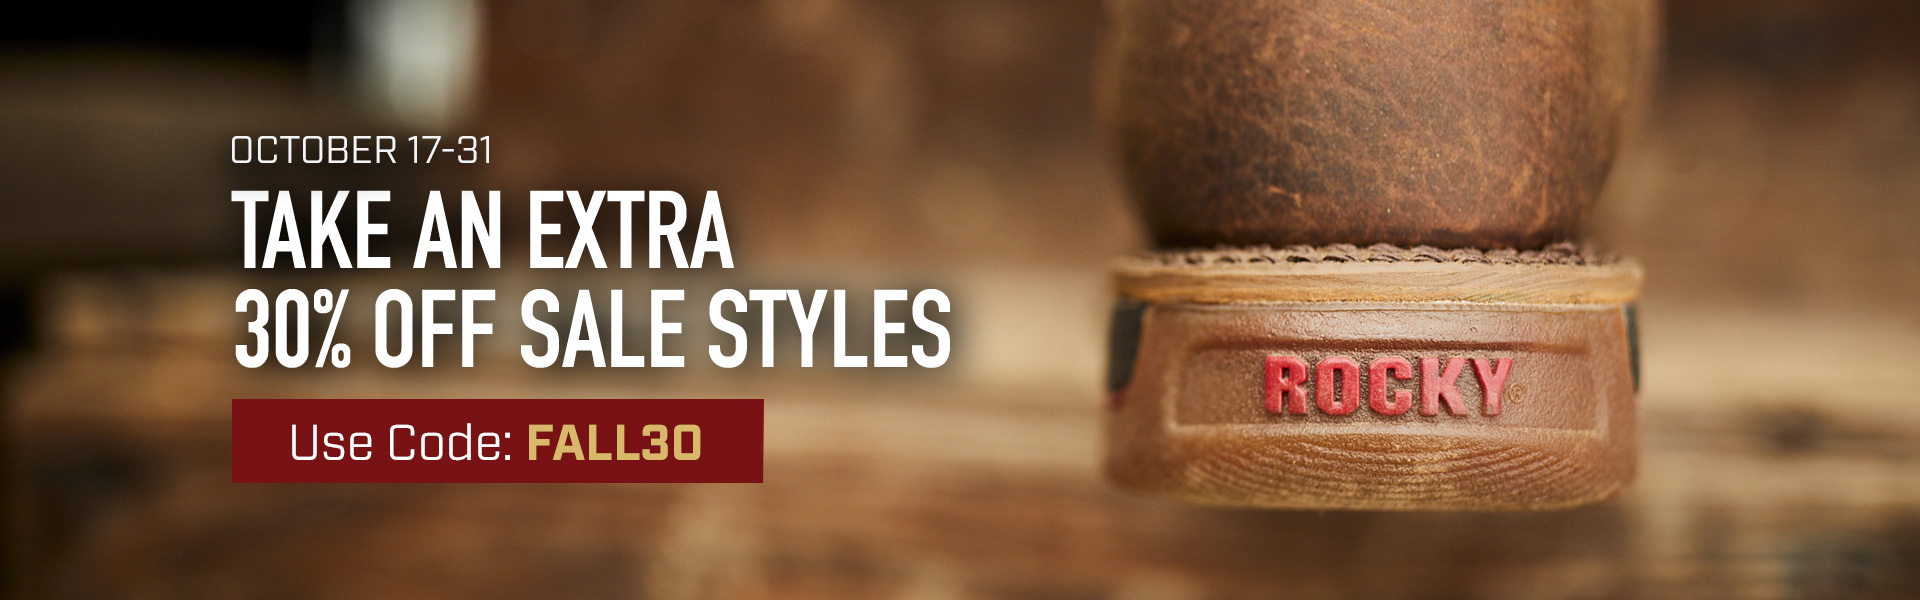 Take an extra 30% off sale styles. Use code FALL30 until 31 October 2019 at 11:59pm (EST). Click to shop now.